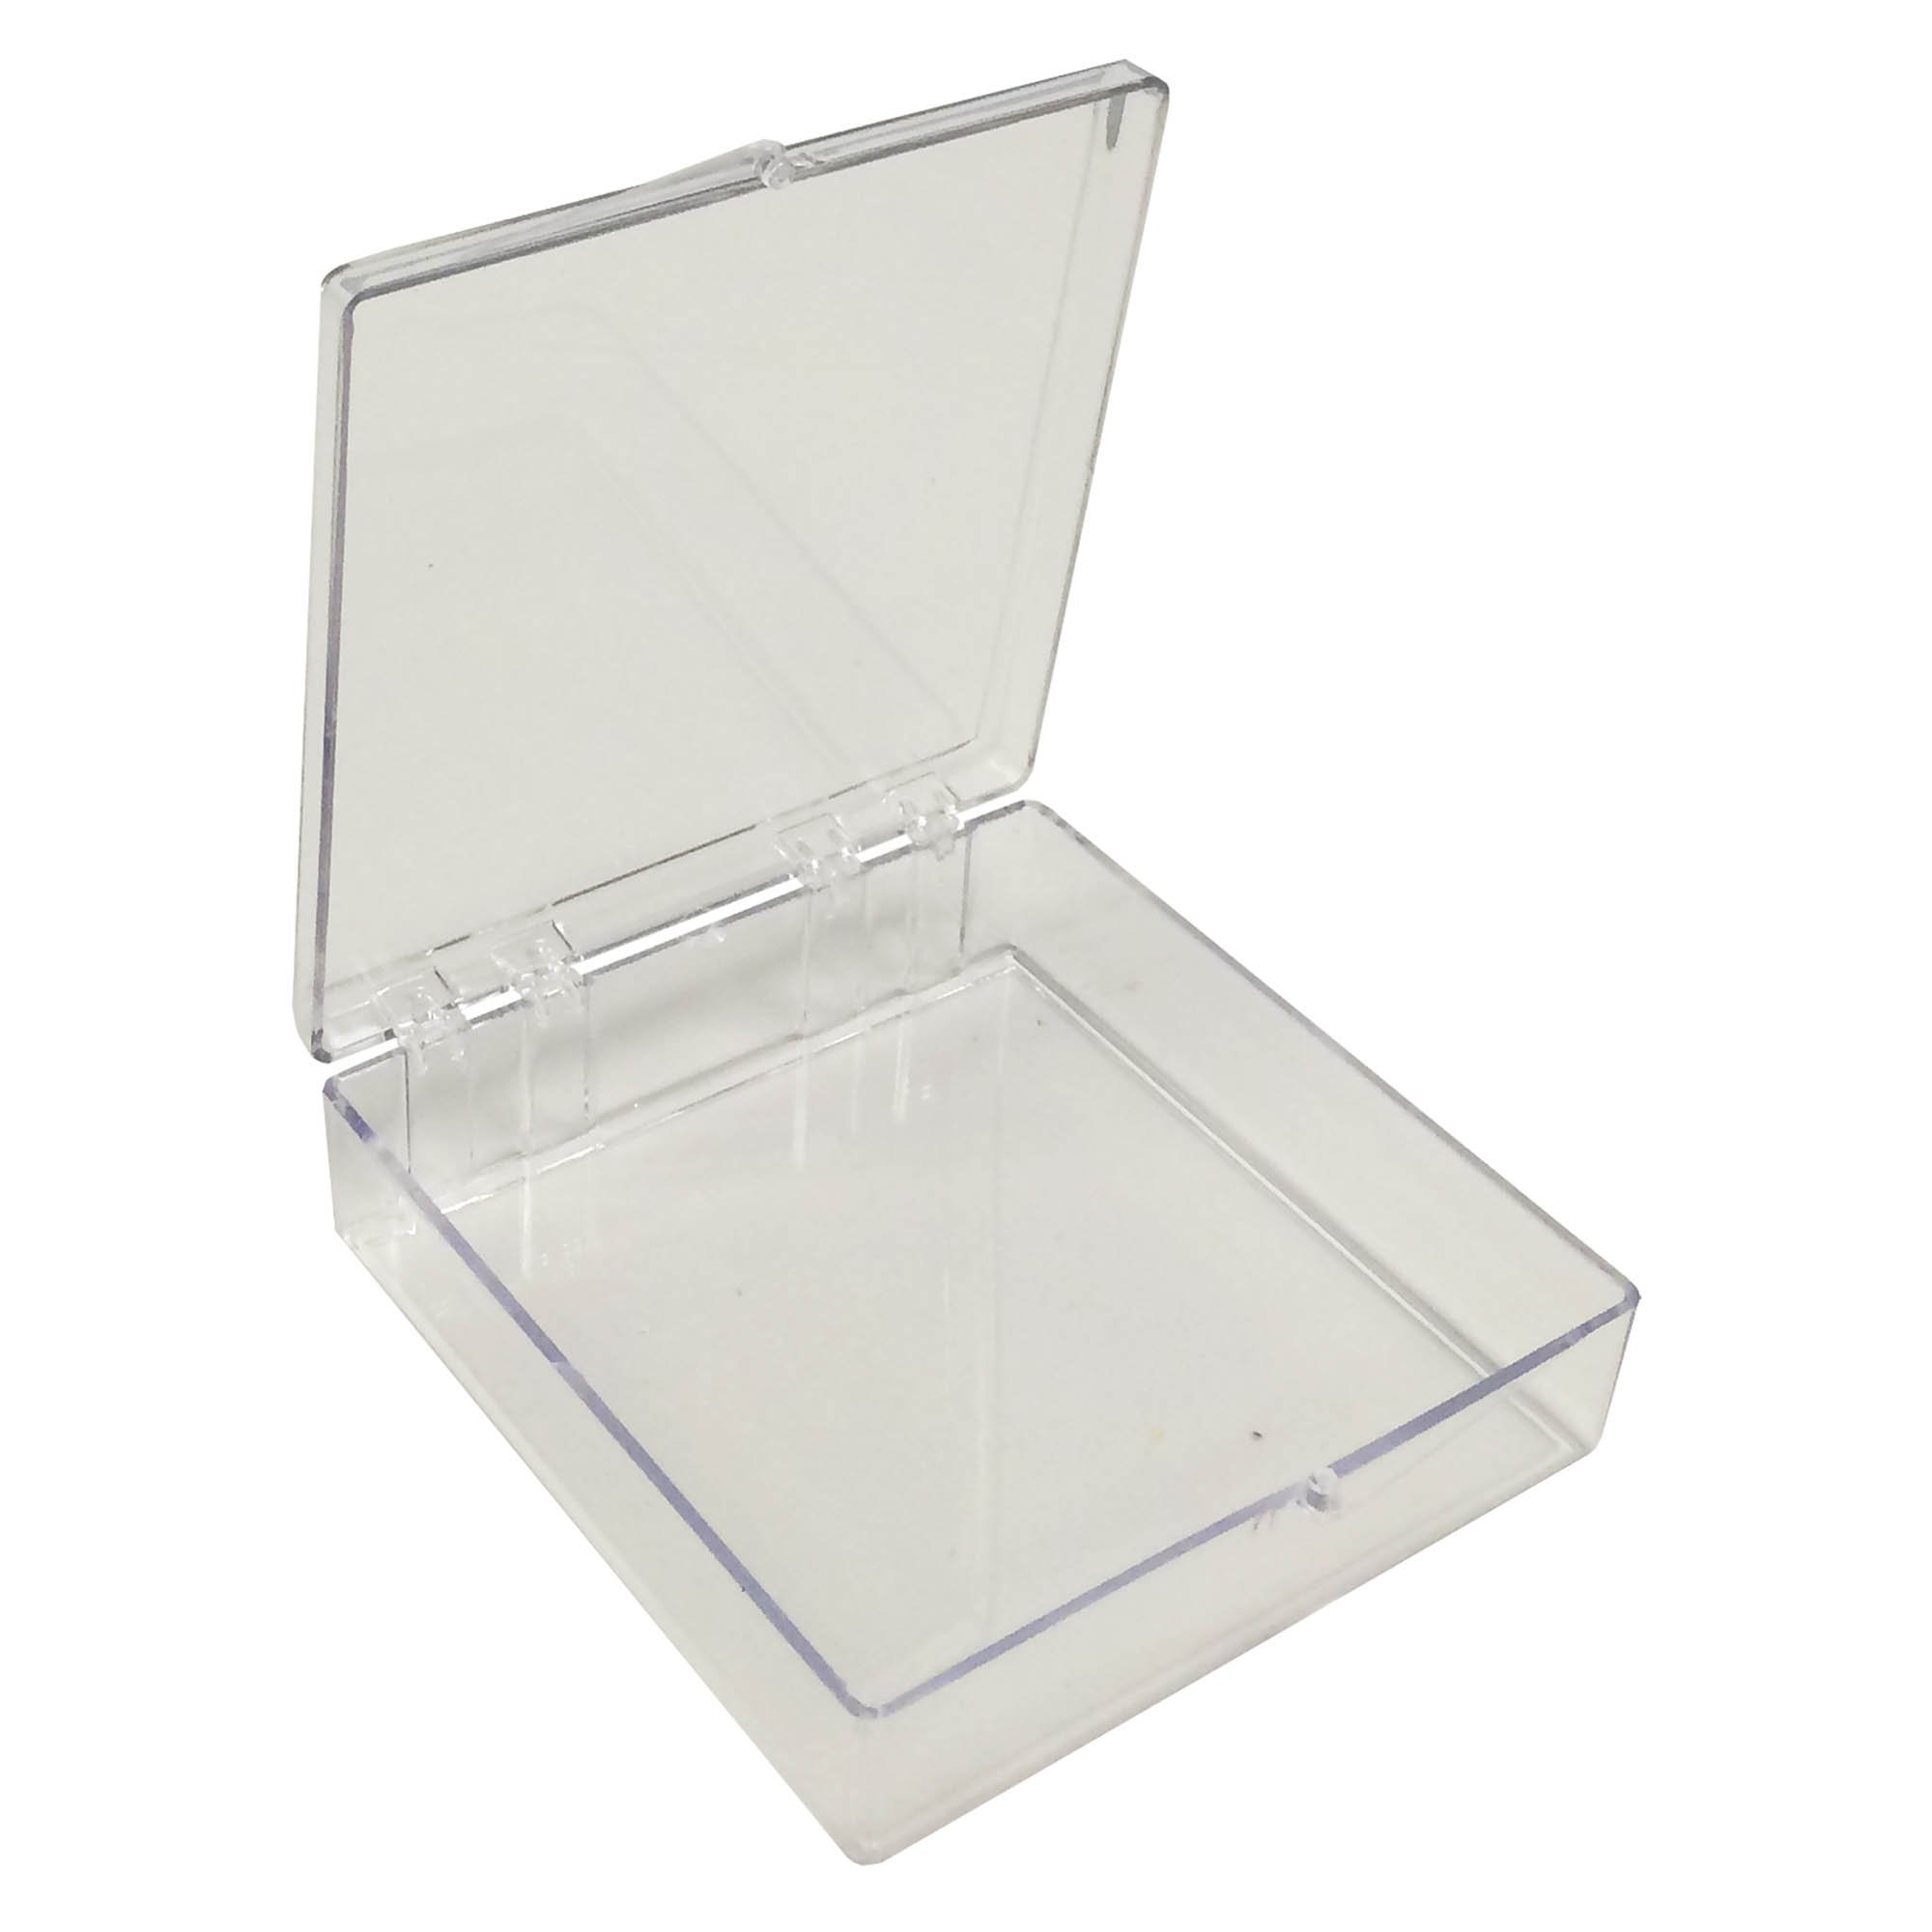 Square Clear Western Blot Box - 4 9/16